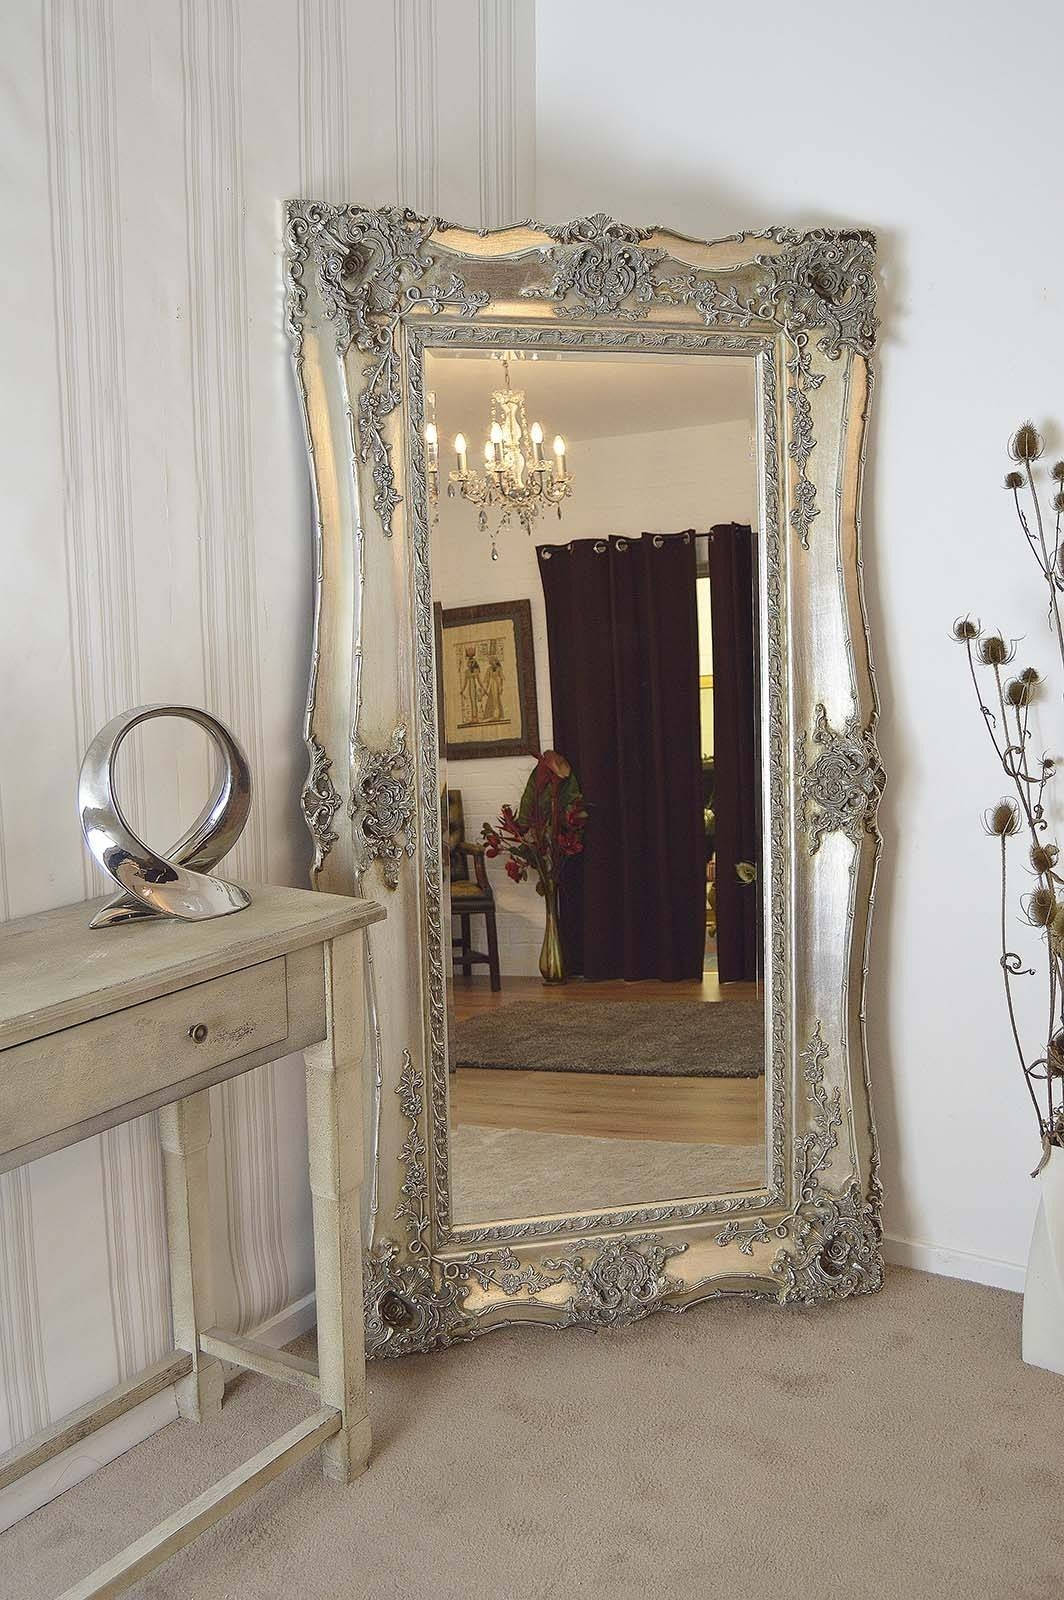 Large Antique Wall Mirror Ornate Frame Antique Ornate Wall Mirrors Pertaining To Antique Large Mirrors (View 8 of 25)